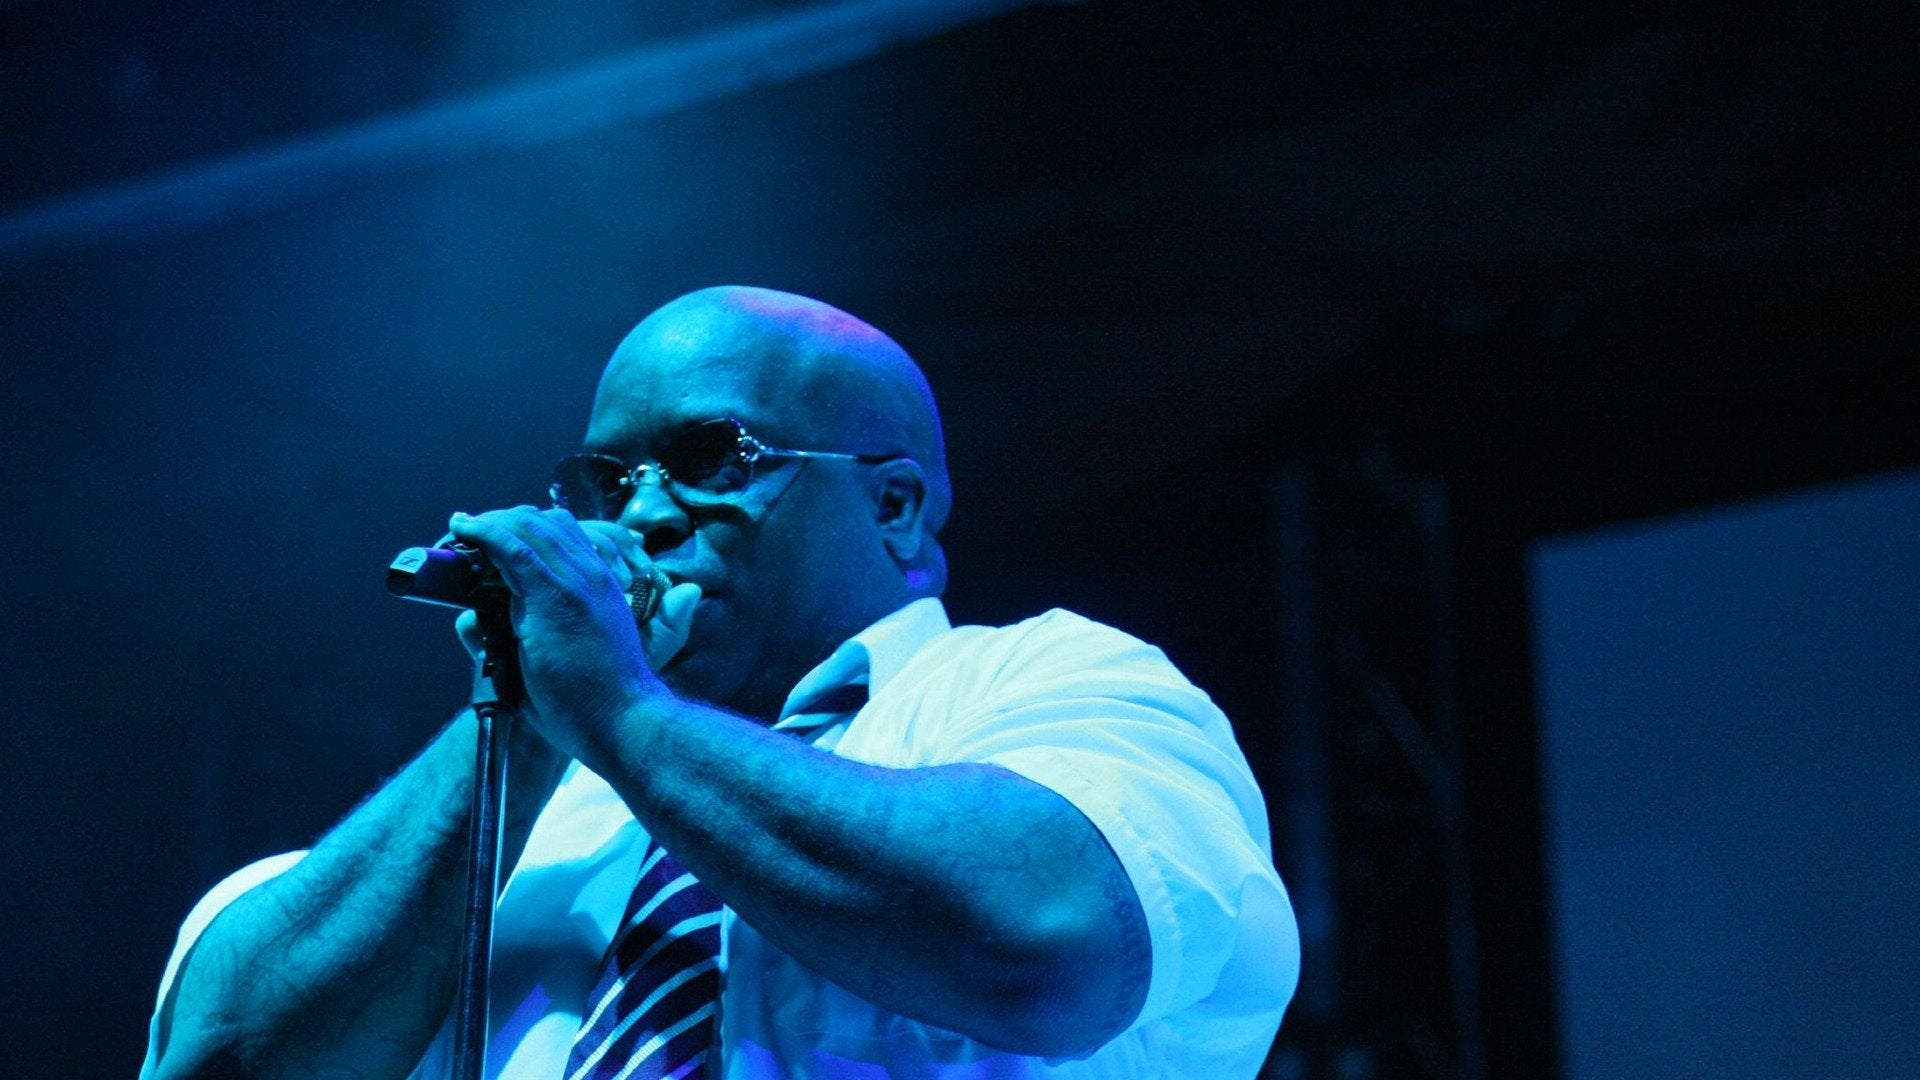 Gnarls Barkley: Live at Roskilde Festival '08